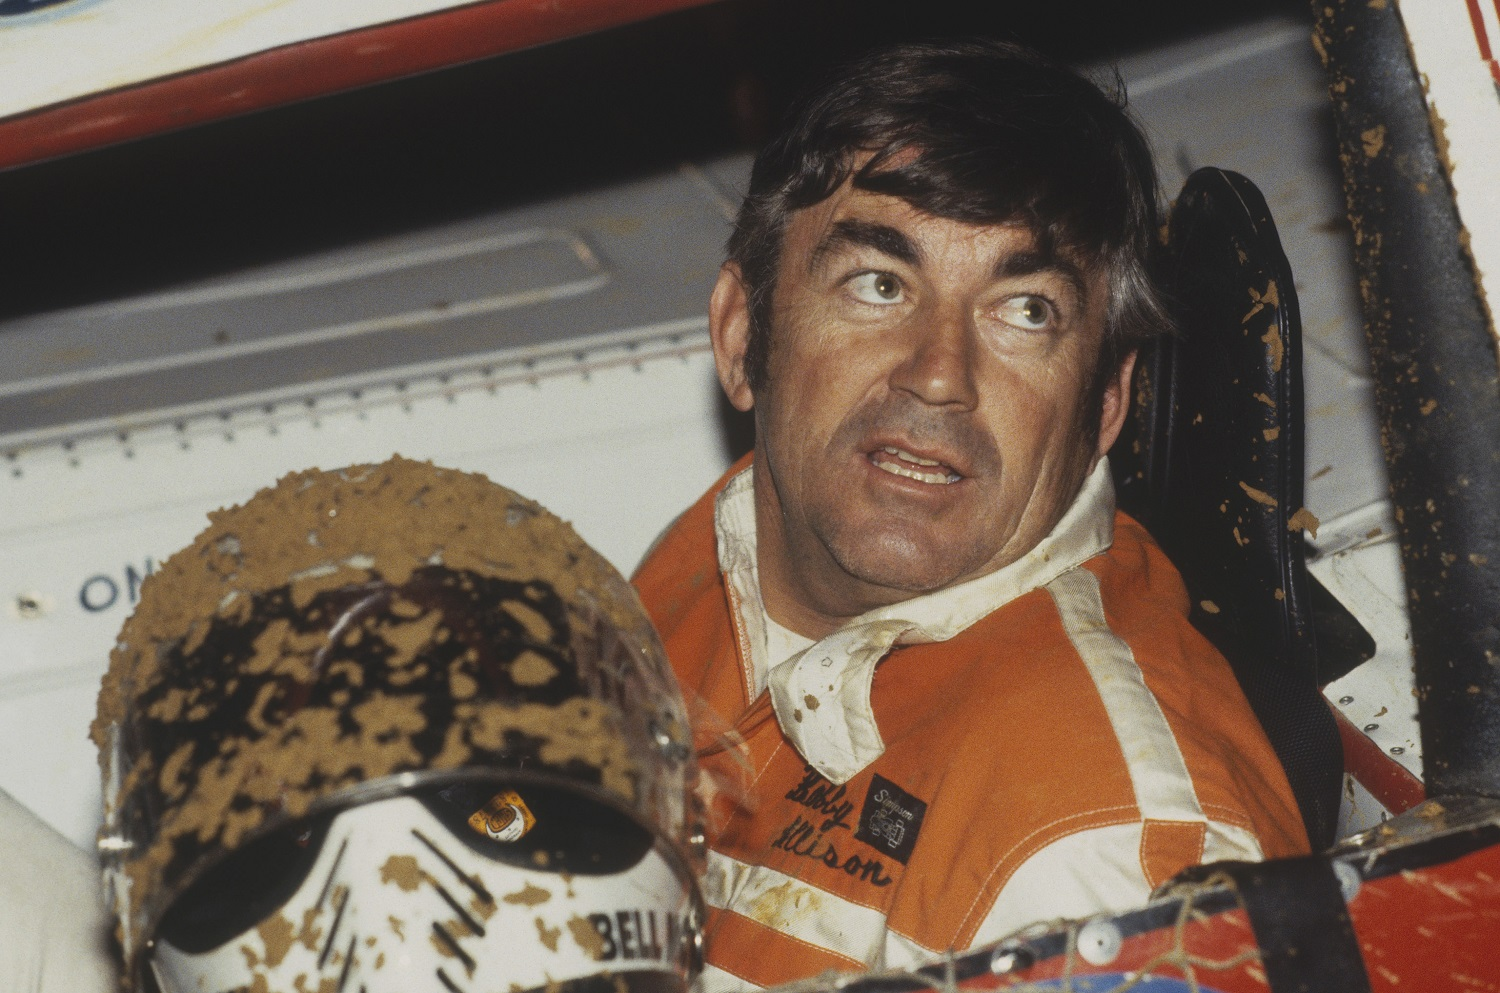 Bobby Allison won the Daytona 500 three times, but his 1982 victory aroused suspicions in NASCAR circles